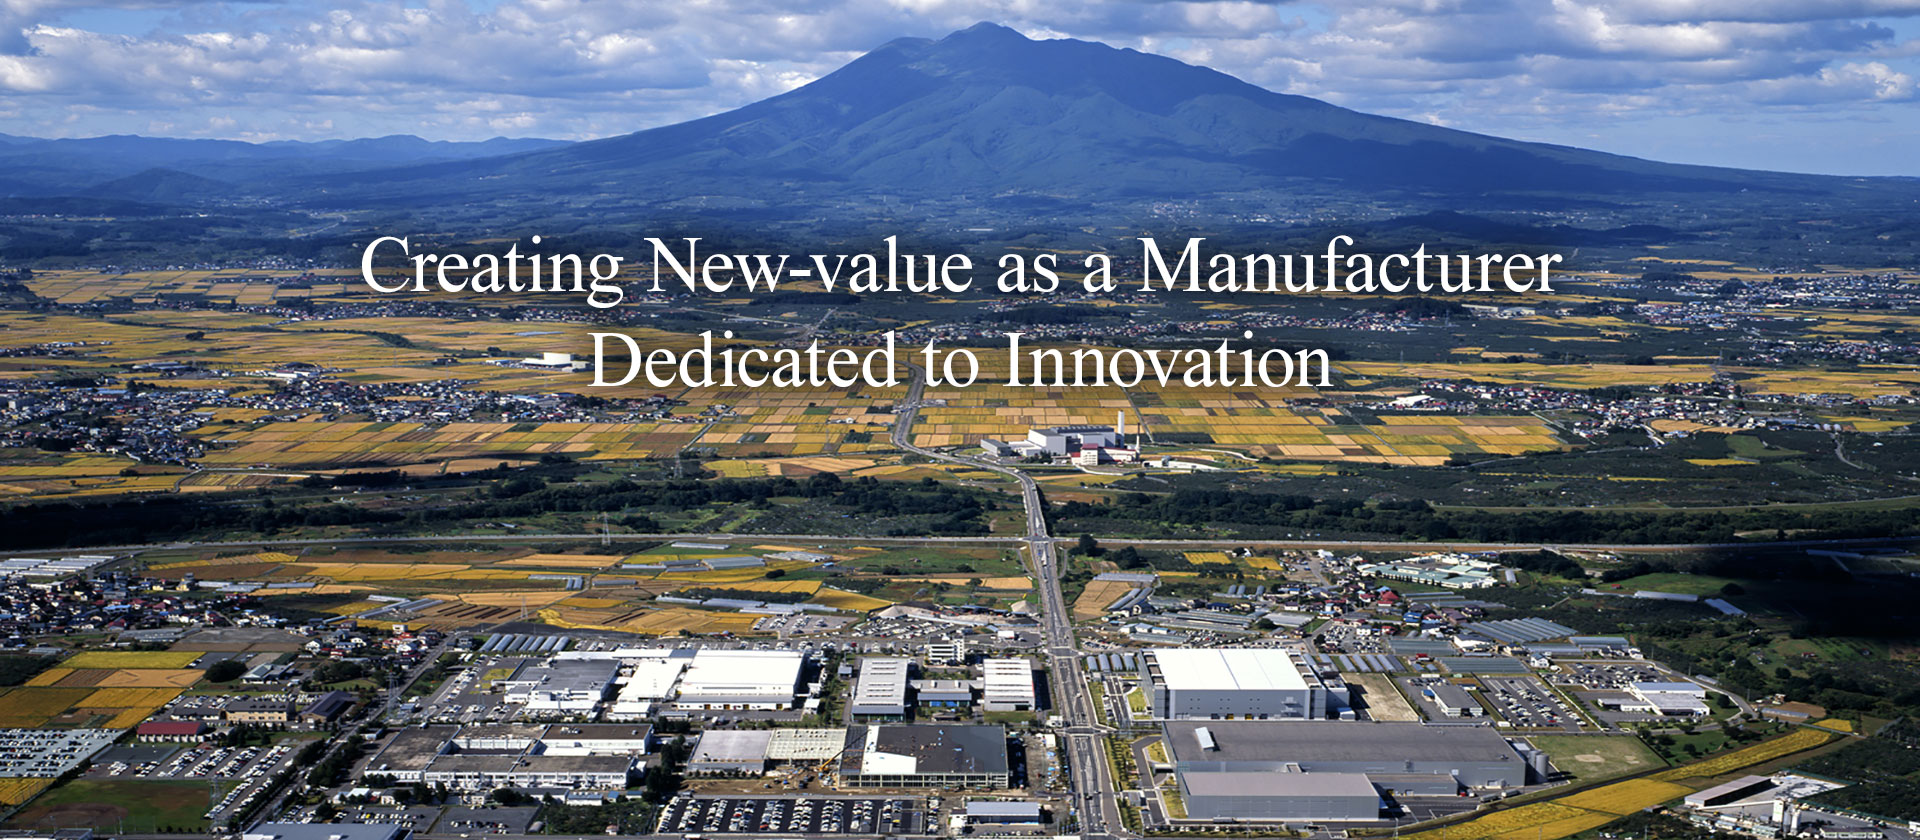 Creating New-value as a Manufacturer Dedicated to Innovation